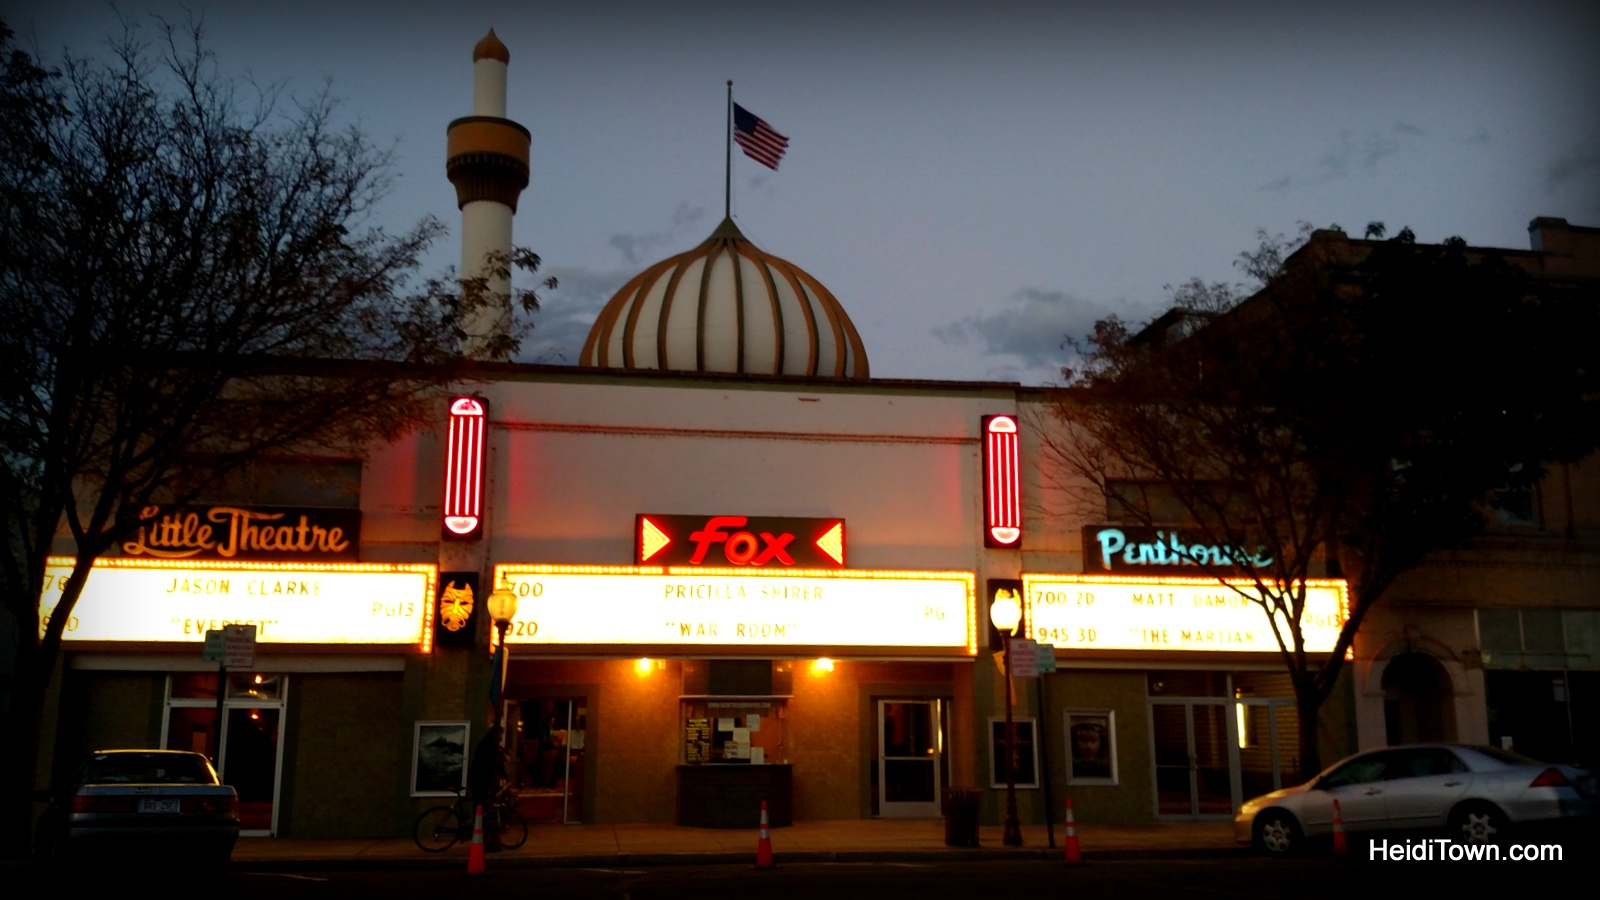 Fox Theater in Montrose, Colorado. HeidiTown.com